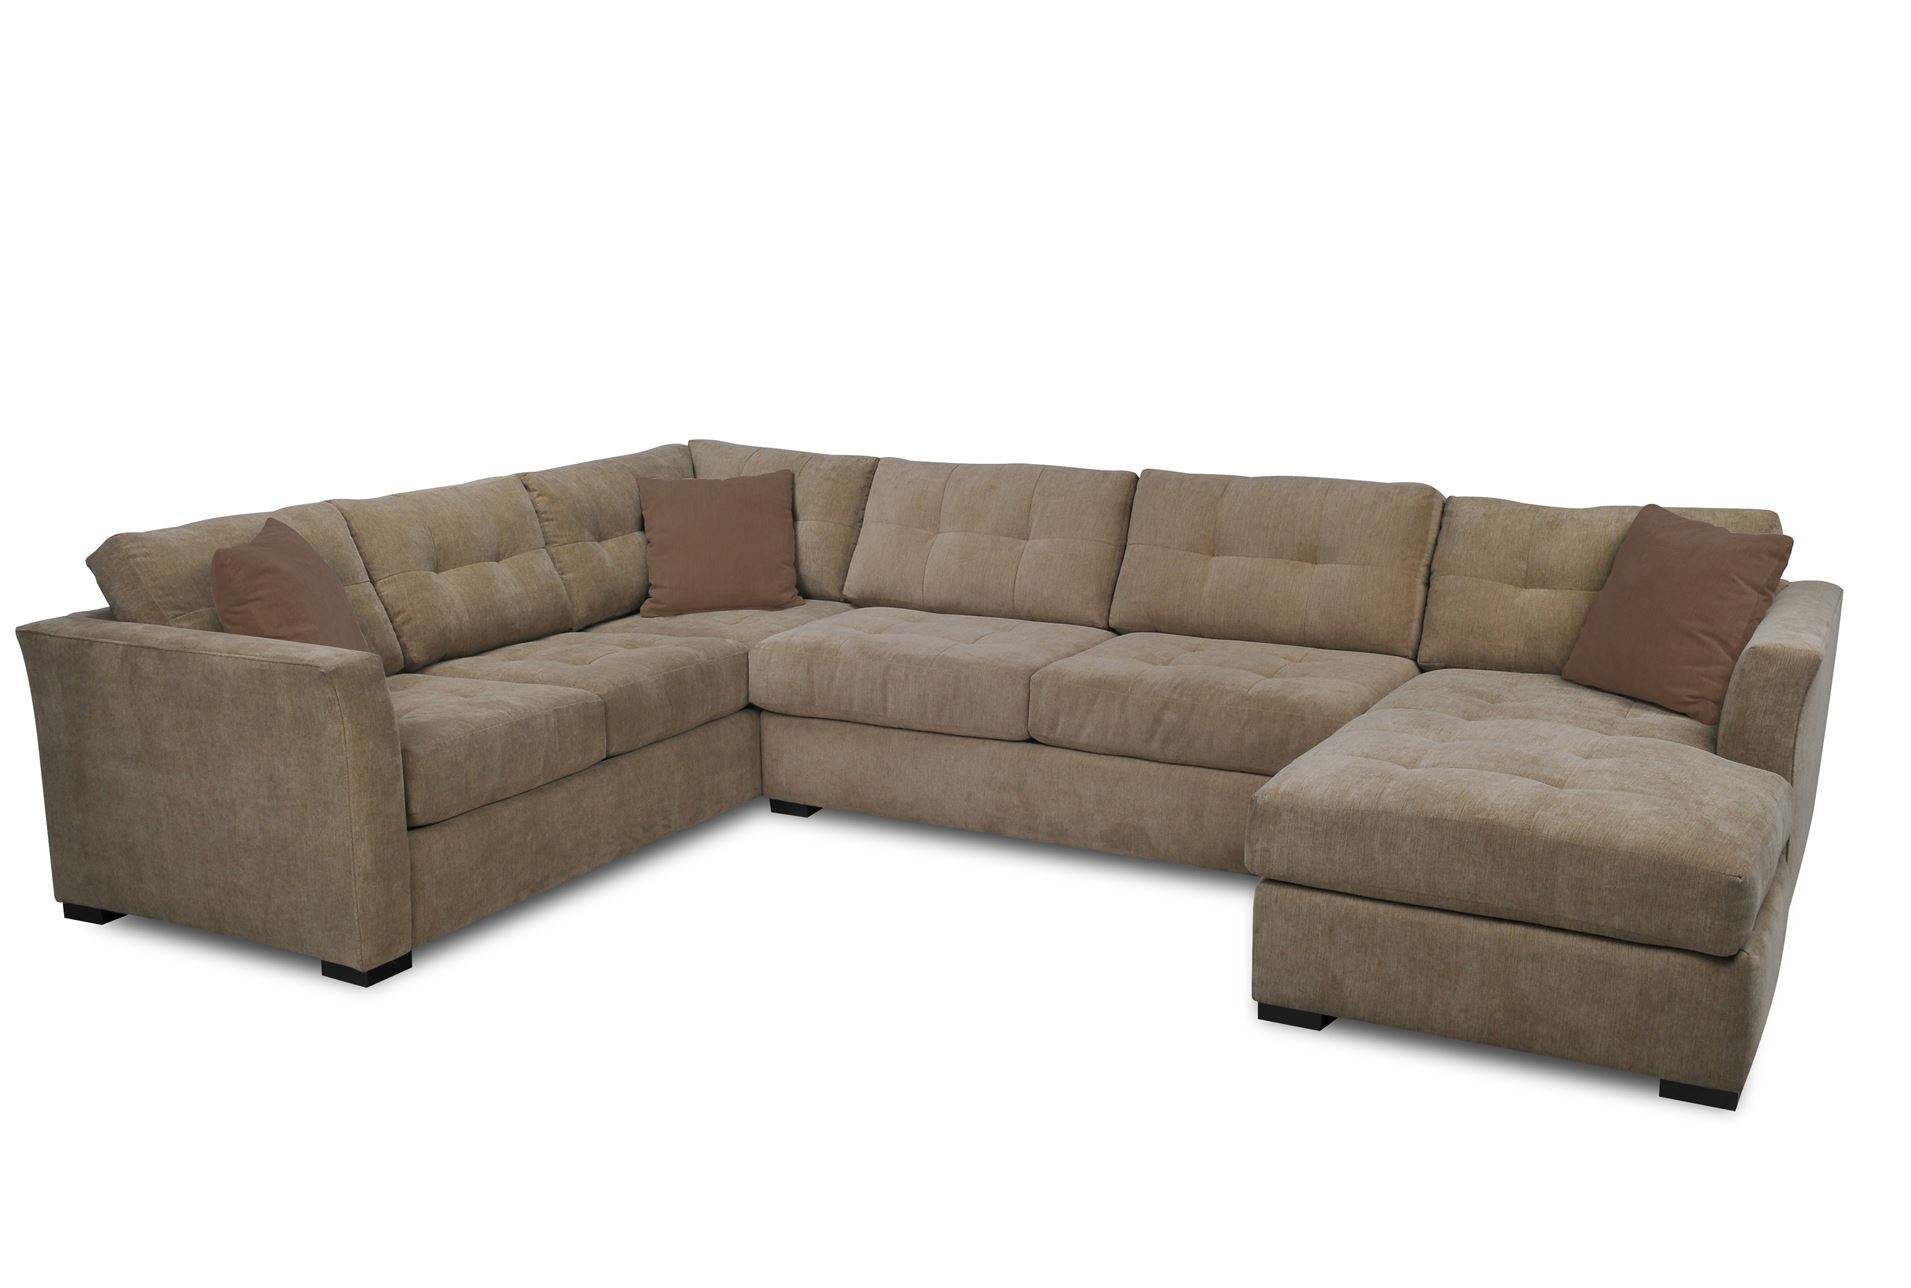 Inspirational living spaces furniture store for Living spaces sofas